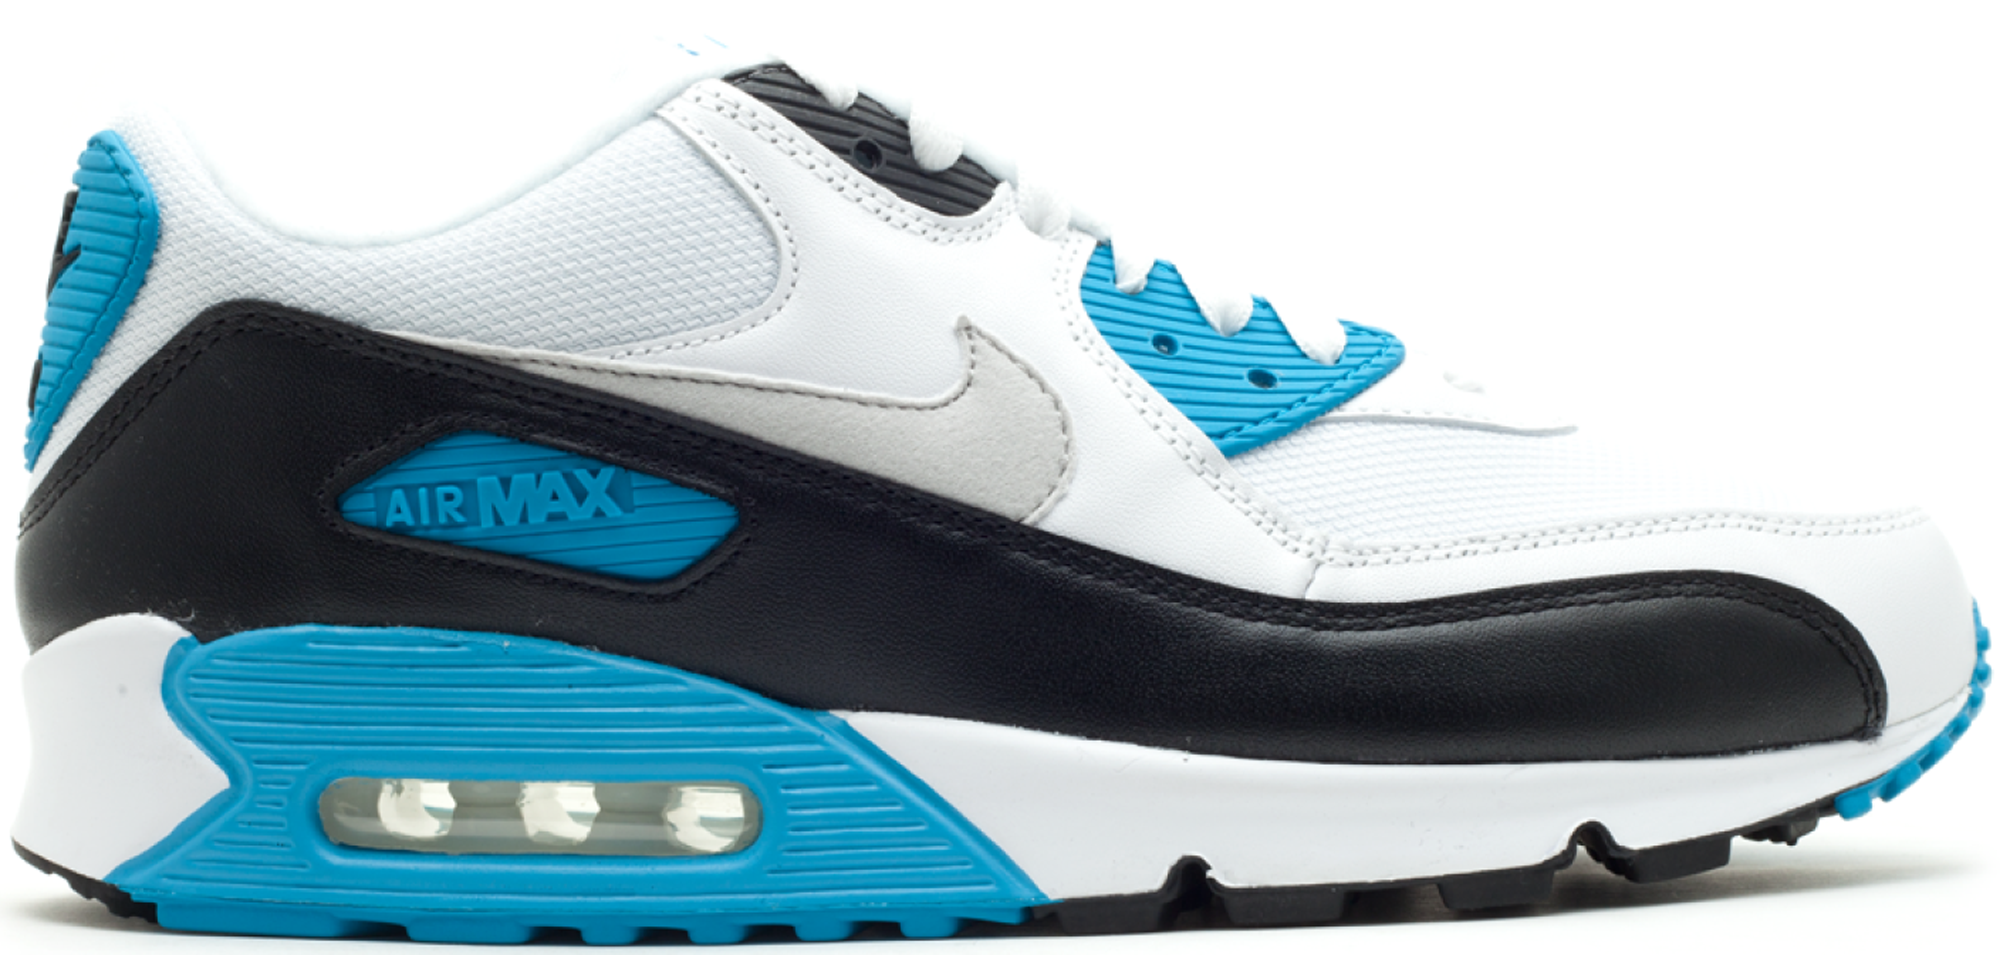 100% Satisfactionsgreen and blue  nike air max 2010sport shoes100% Originalhot sale onlineBA259